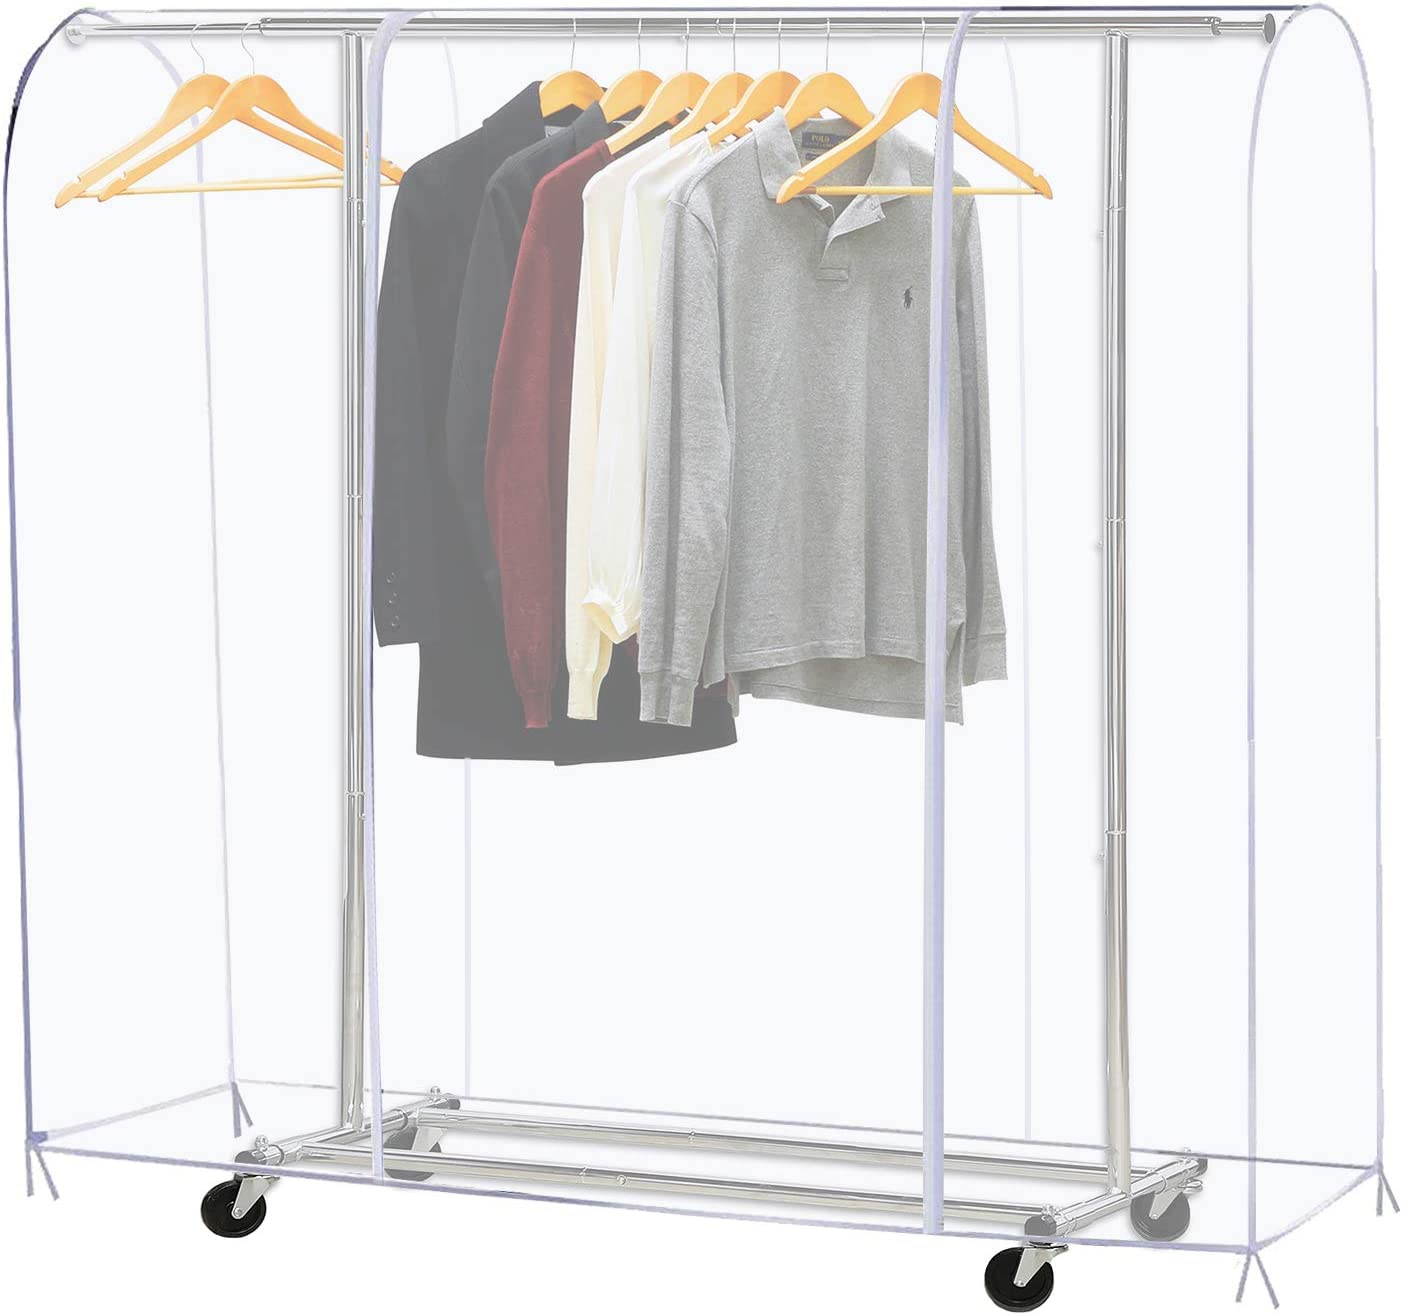 Becko Clear Garment Rack with Dustproof 1 year warranty Max 80% OFF Cover Clothes